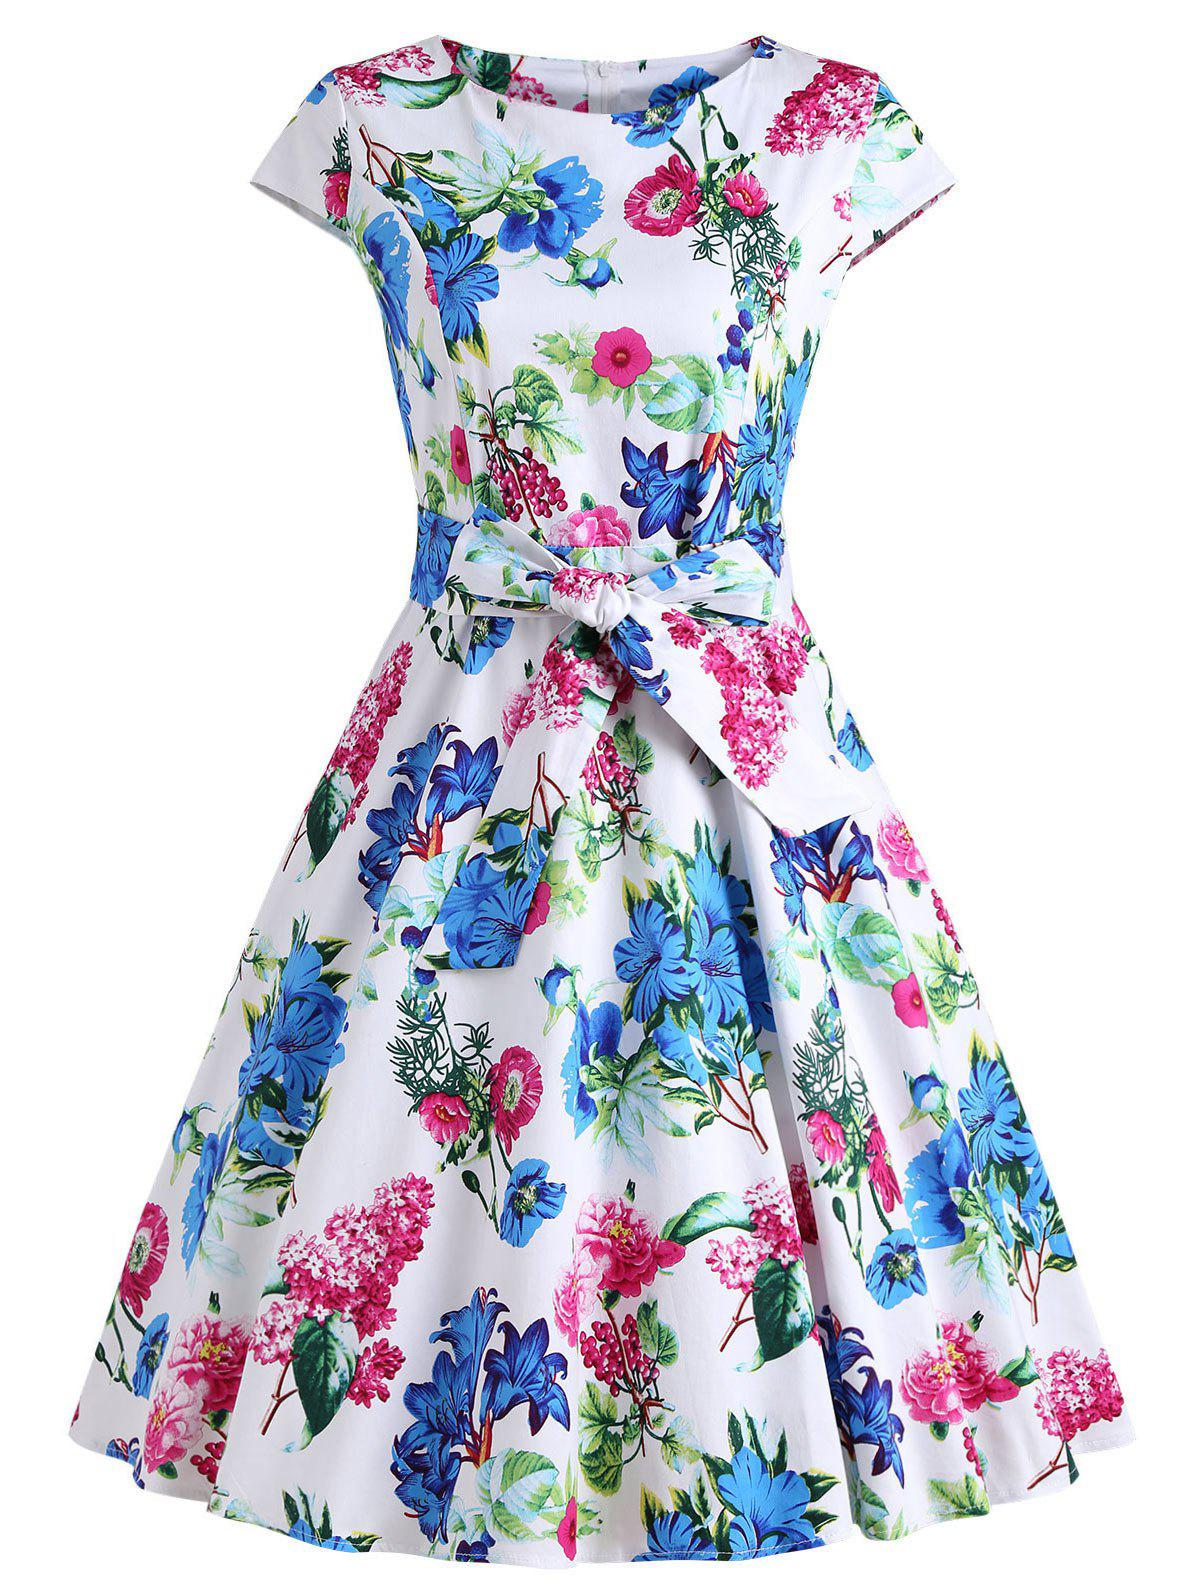 Retro Floral Print Party Swing Dress music note party swing dress